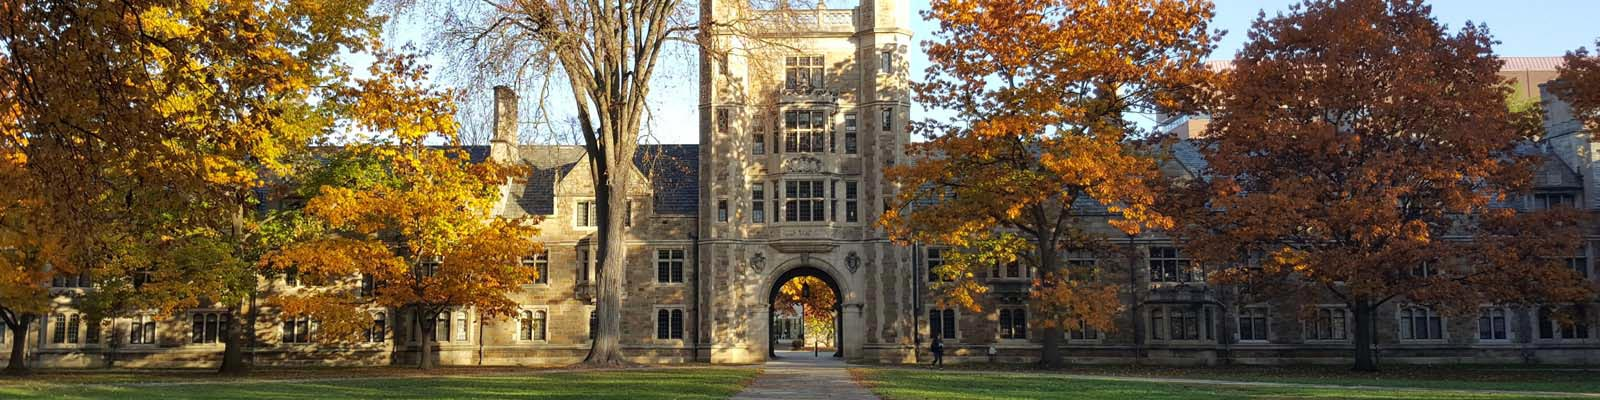 This is an image of the Law Quadrangle building in Ann Arbor Michigan. ASTA-USA provides professional translation services in this city.